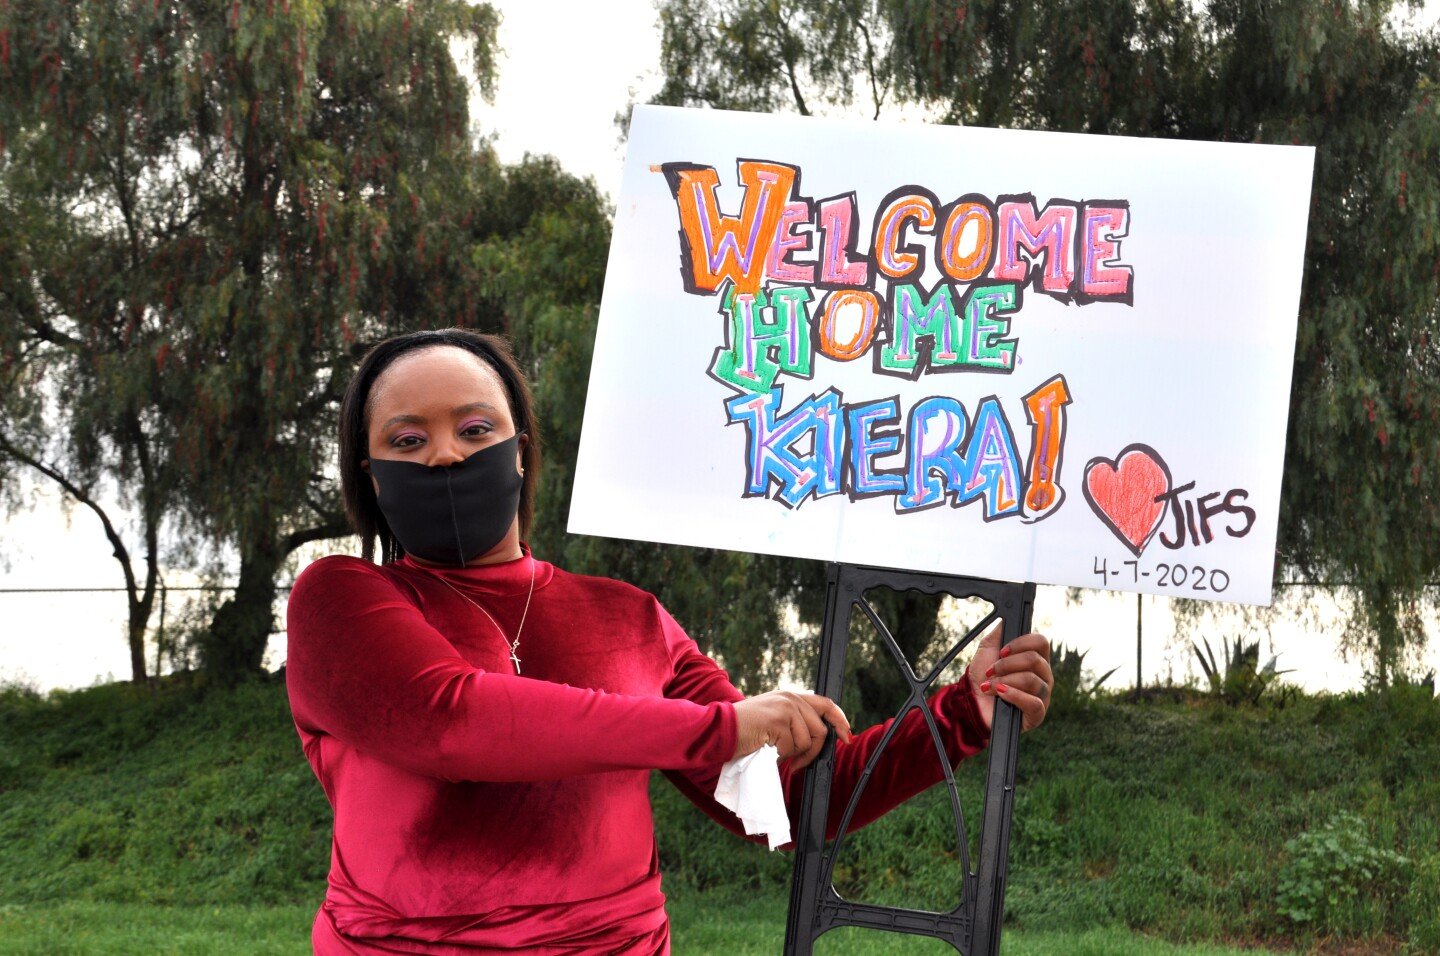 Kiera Newsome poses with her welcome home sign, wearing a protective face mask from her family | Gina Pollack